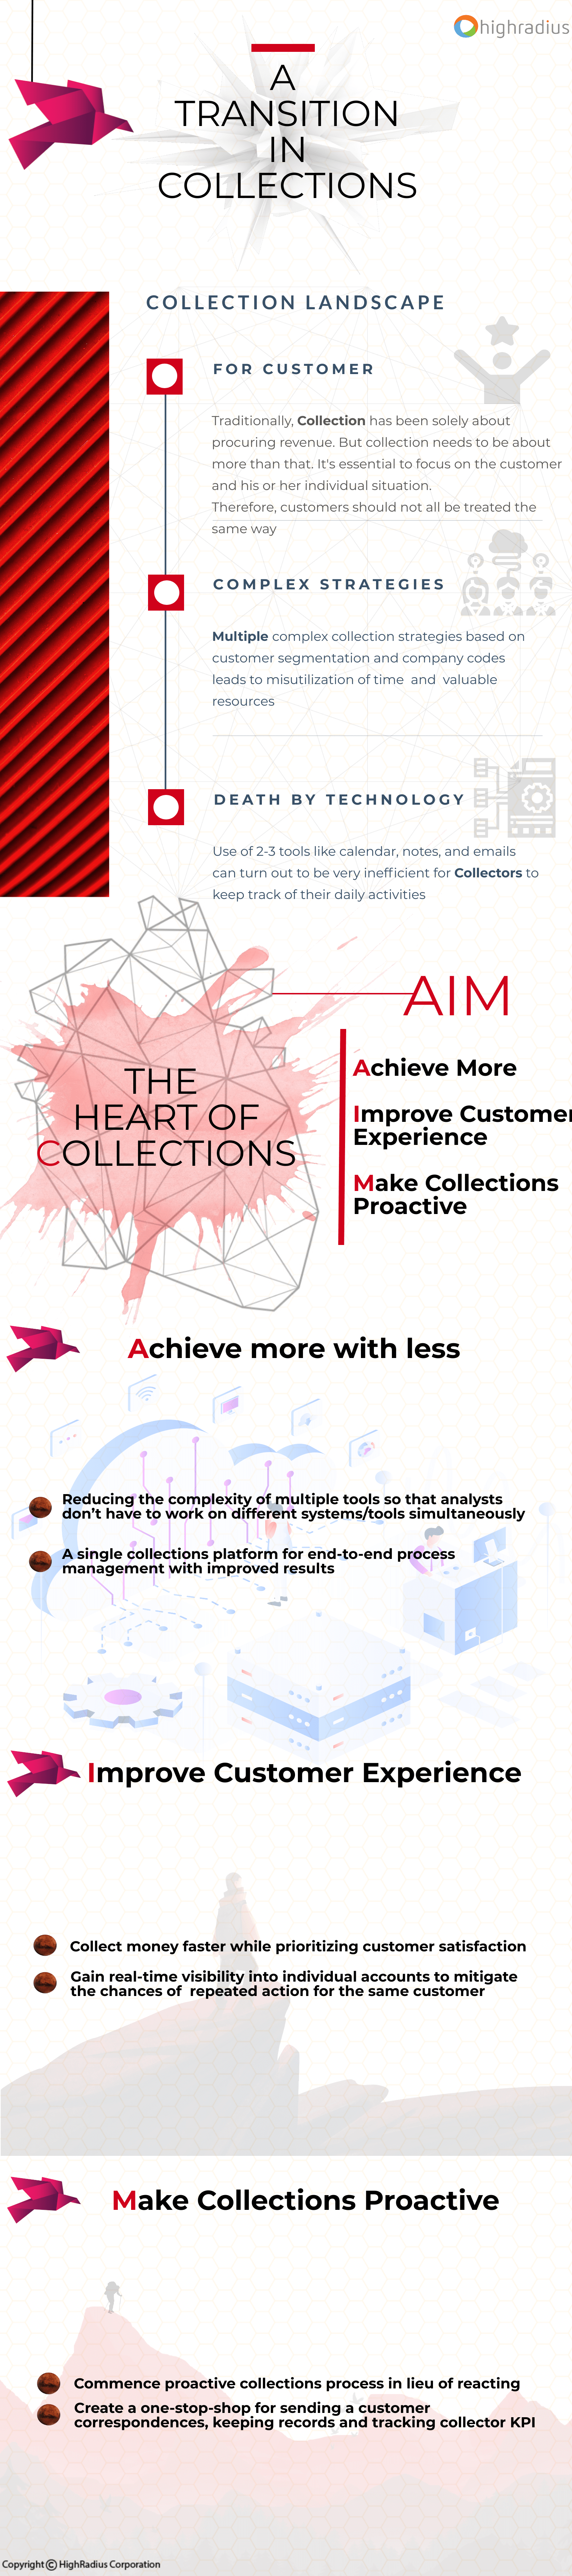 A Transition in Collections